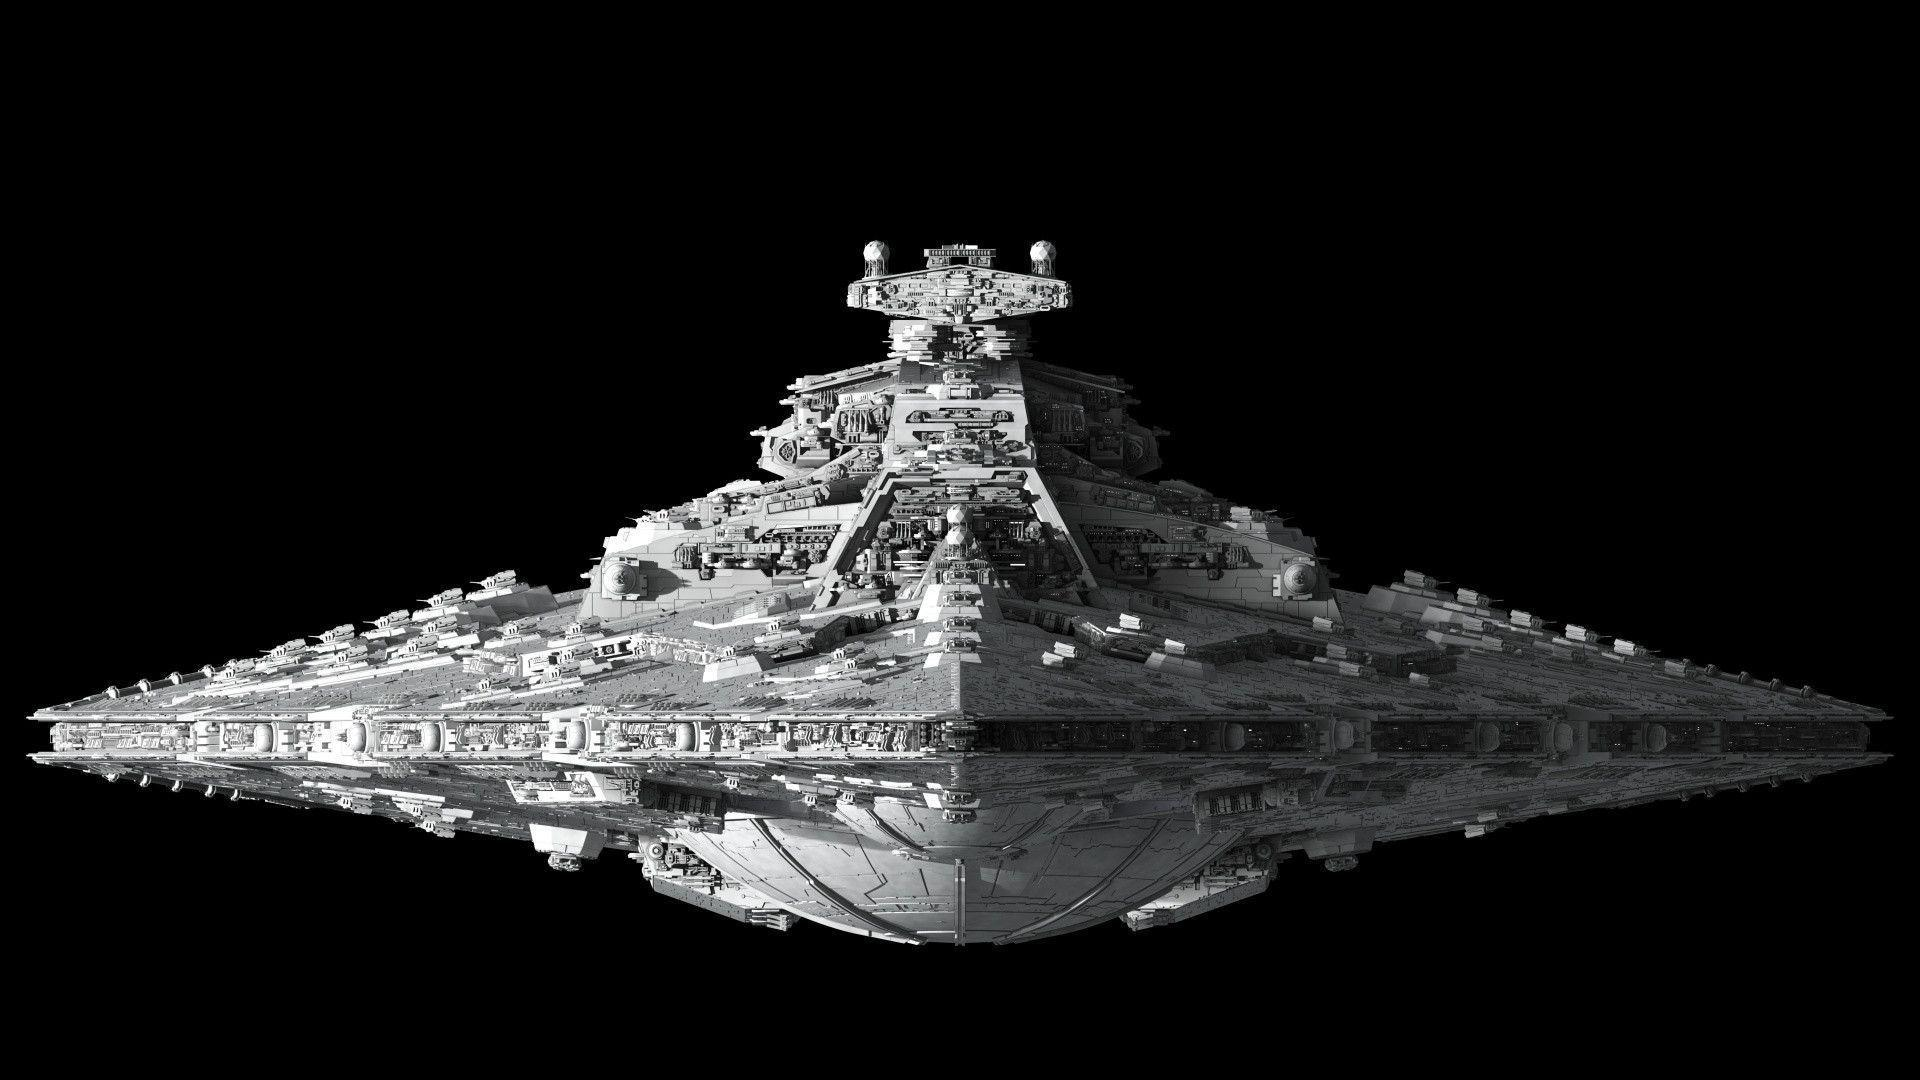 Wallpapers HD 1080p Black And White Star Wars